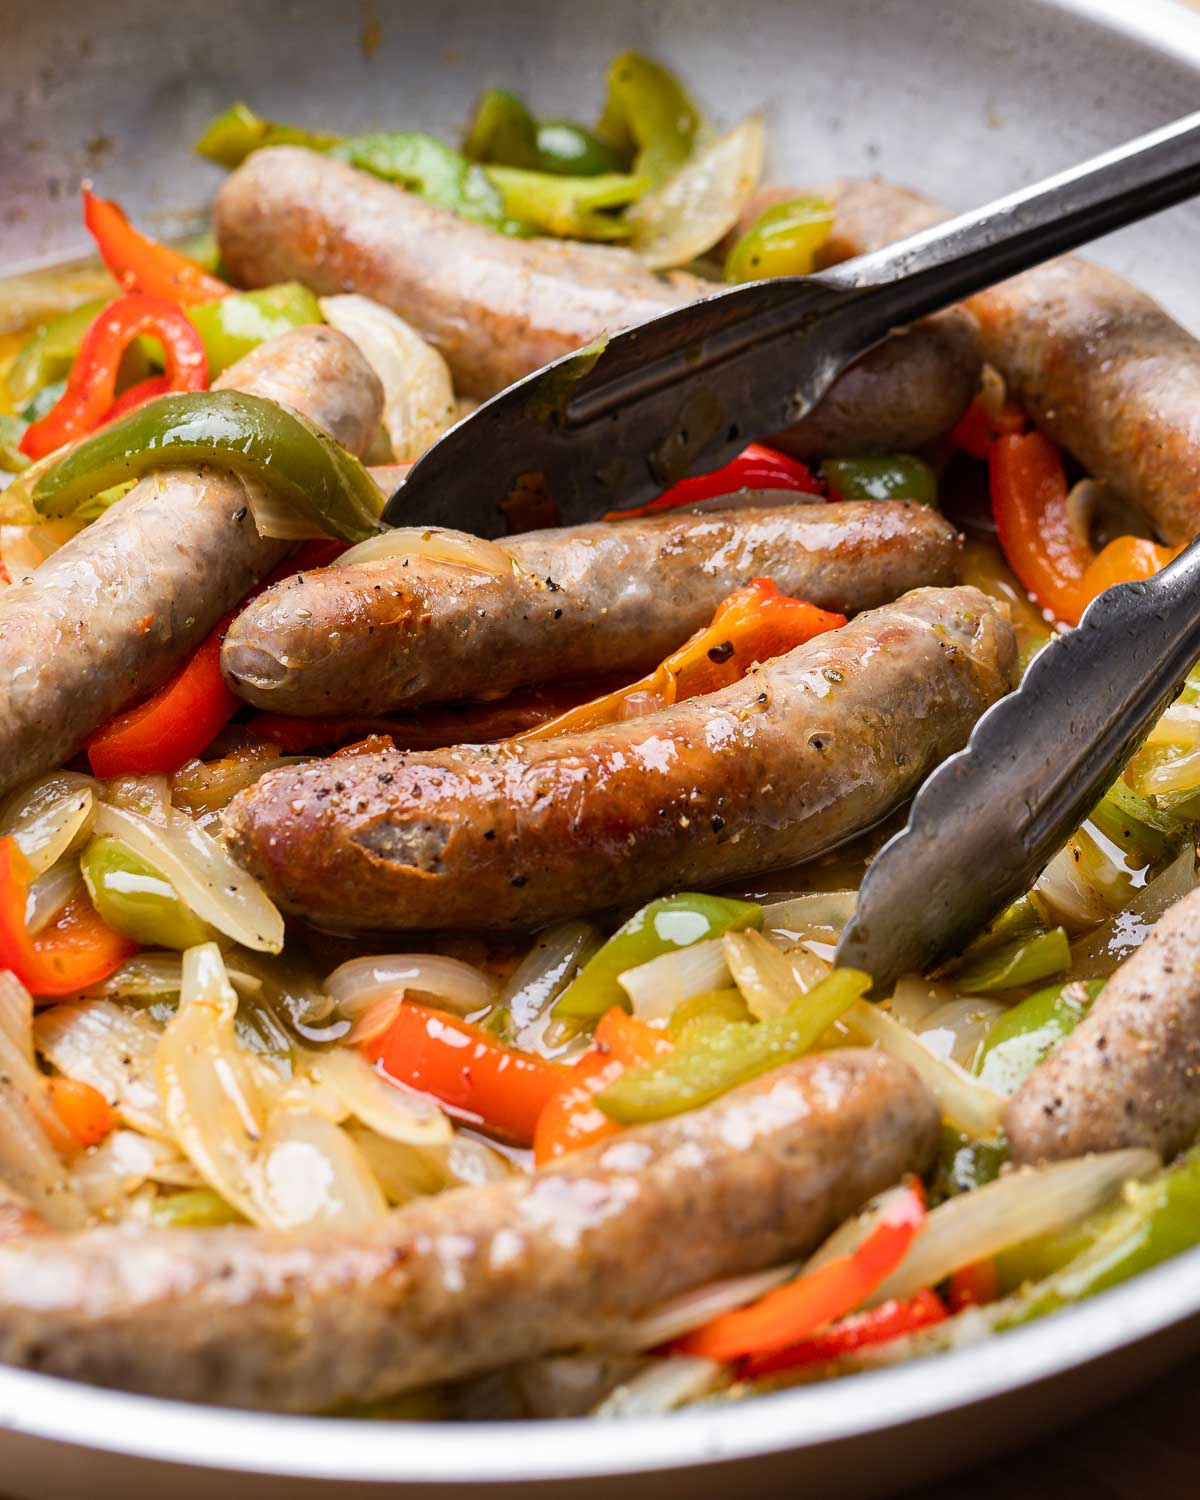 Pan of sausage and peppers.